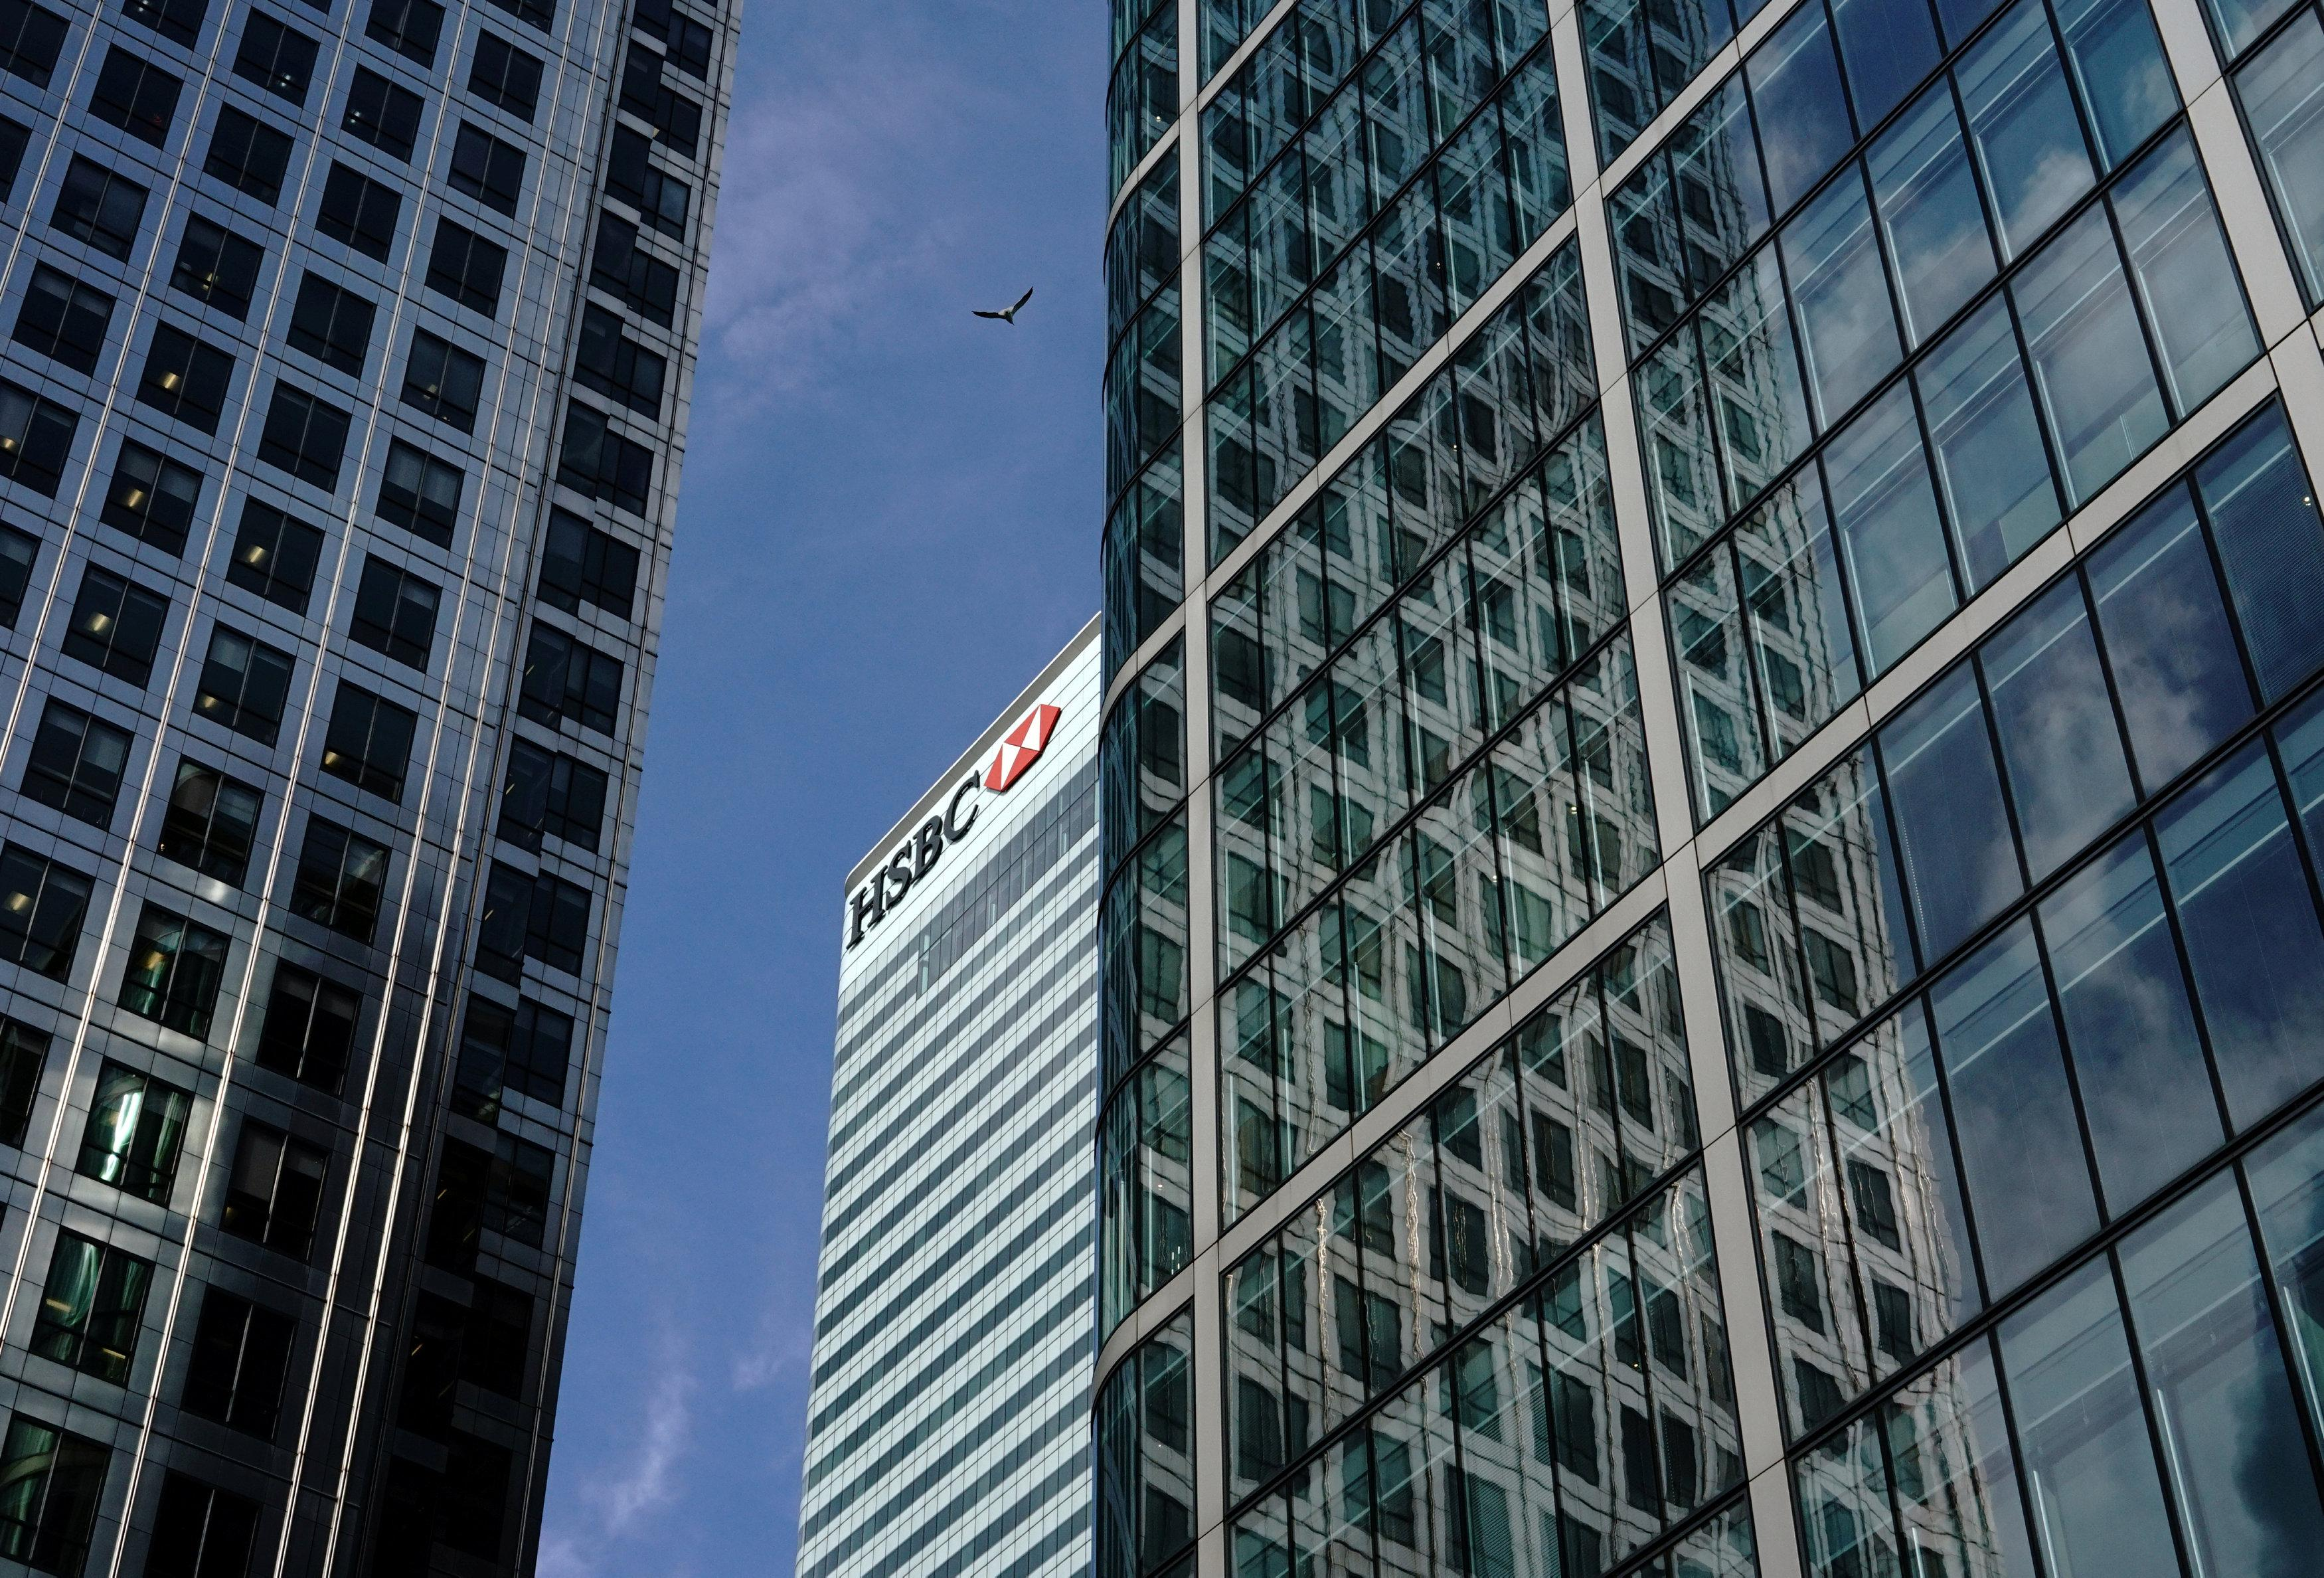 The HSBC bank is seen in the financial district of Canary Wharf in London, Britain, July 13, 2017.  Kevin Coombs